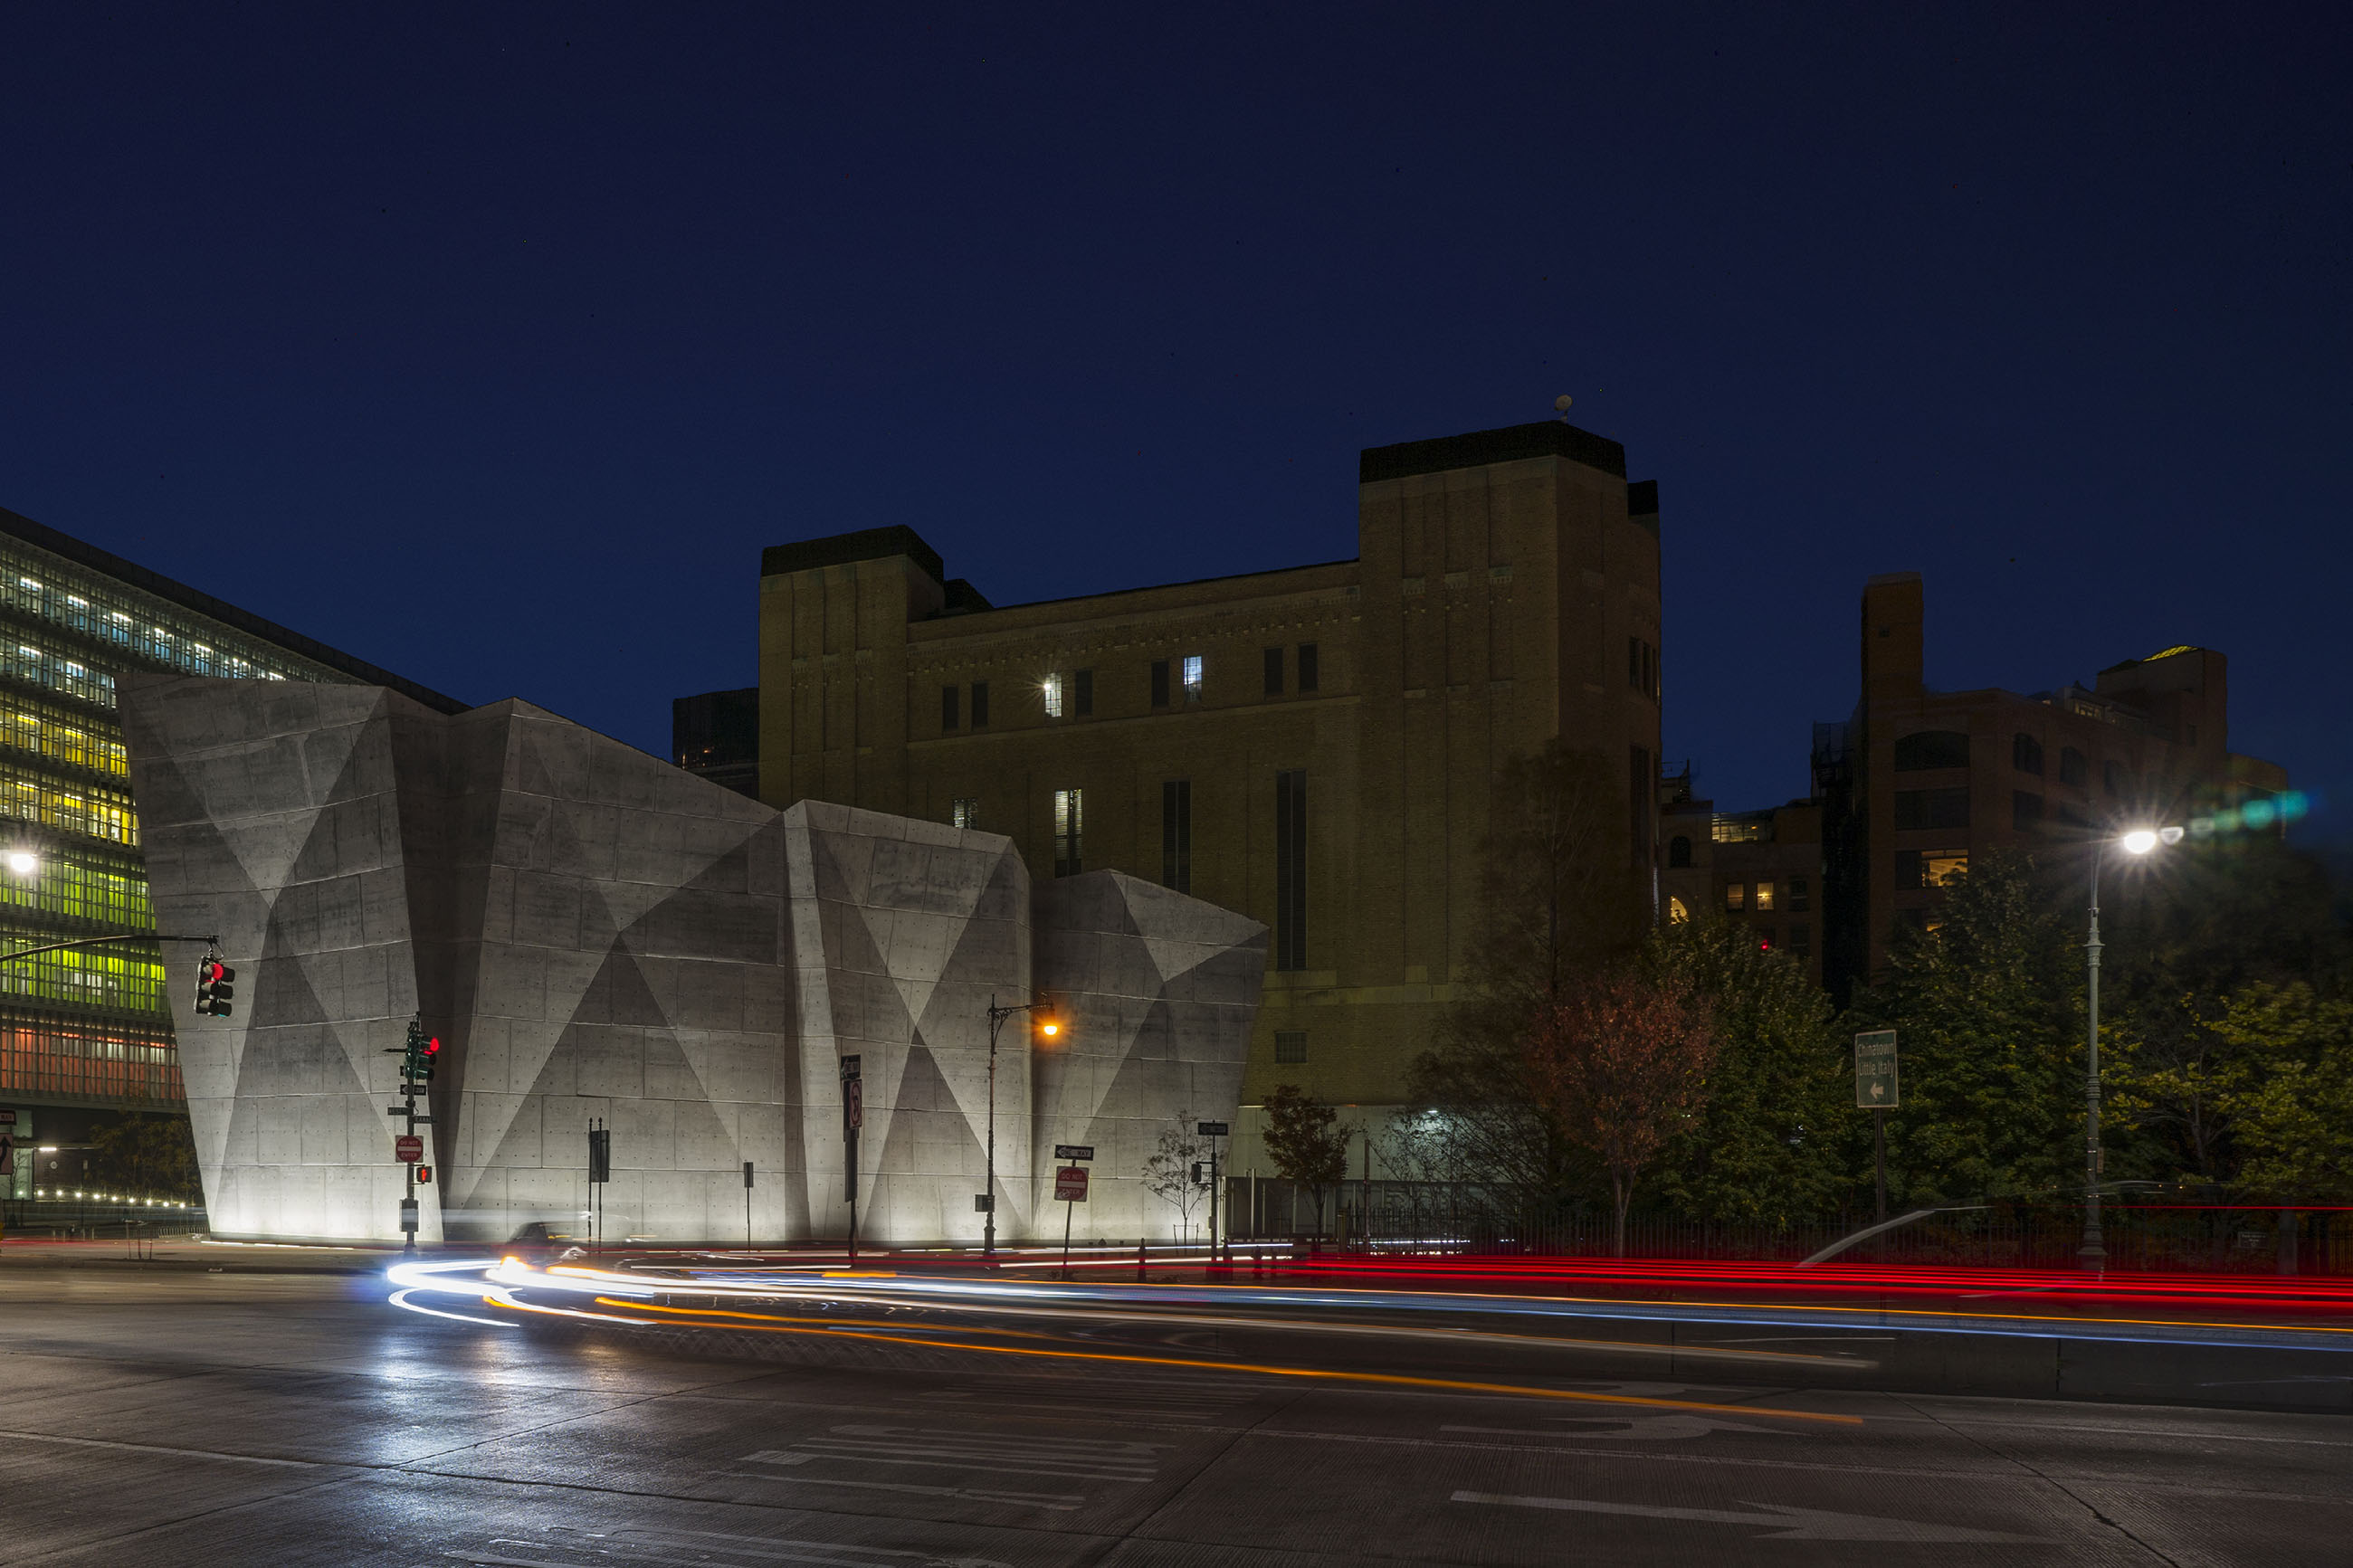 Architecture Photography Spring Street Salt Shed